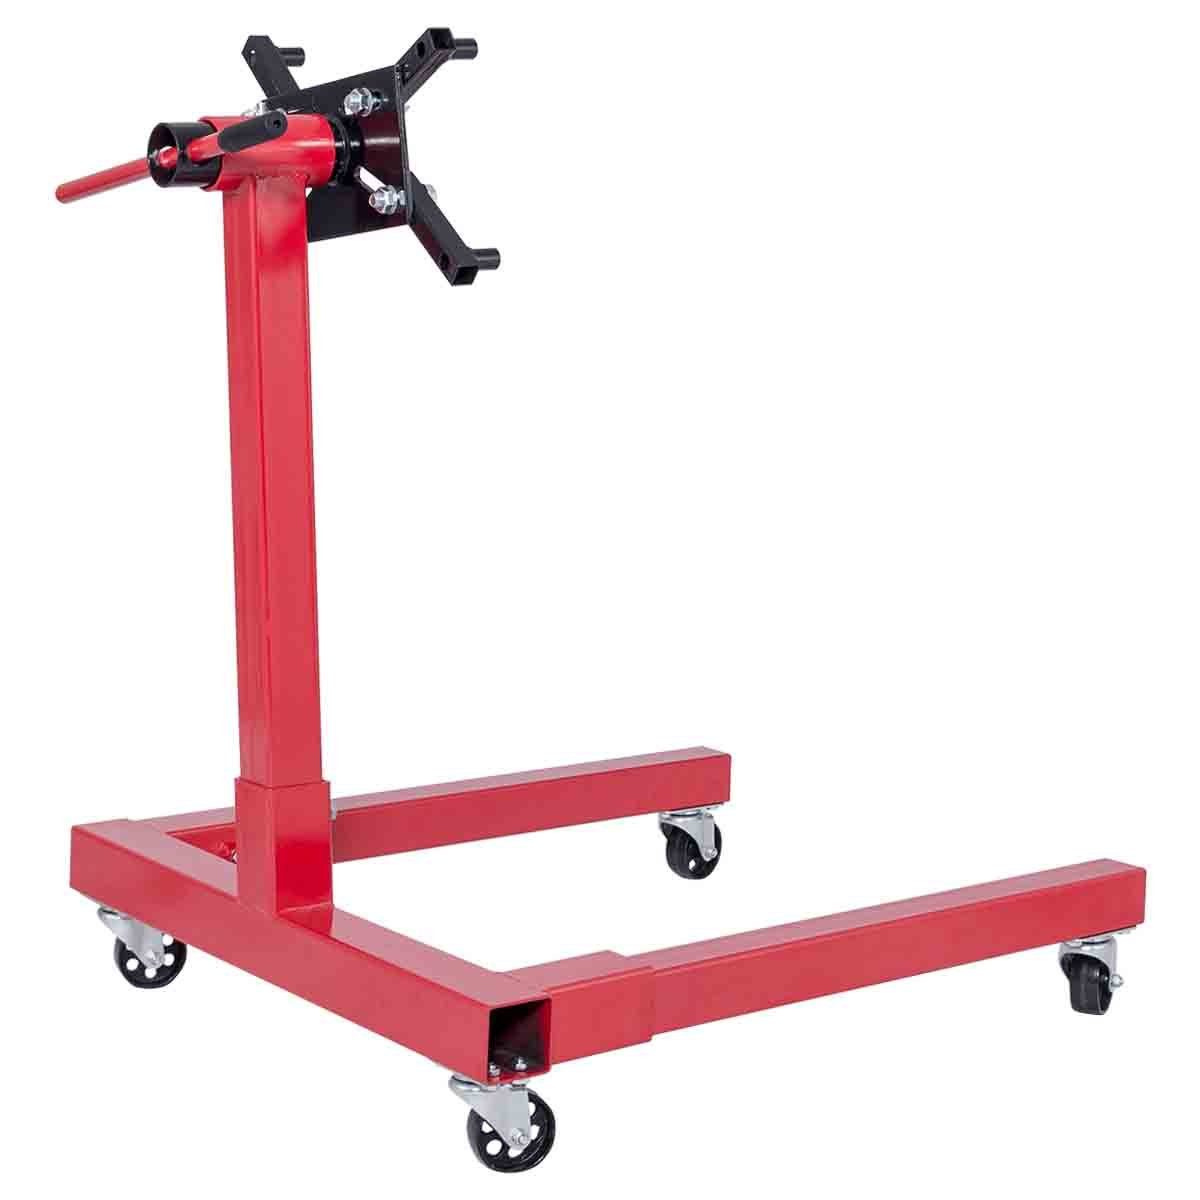 Toolsempire Engine Stand 1250 lbs Capacity Hoist Automotive Lift Rotating Shop Motor Stand